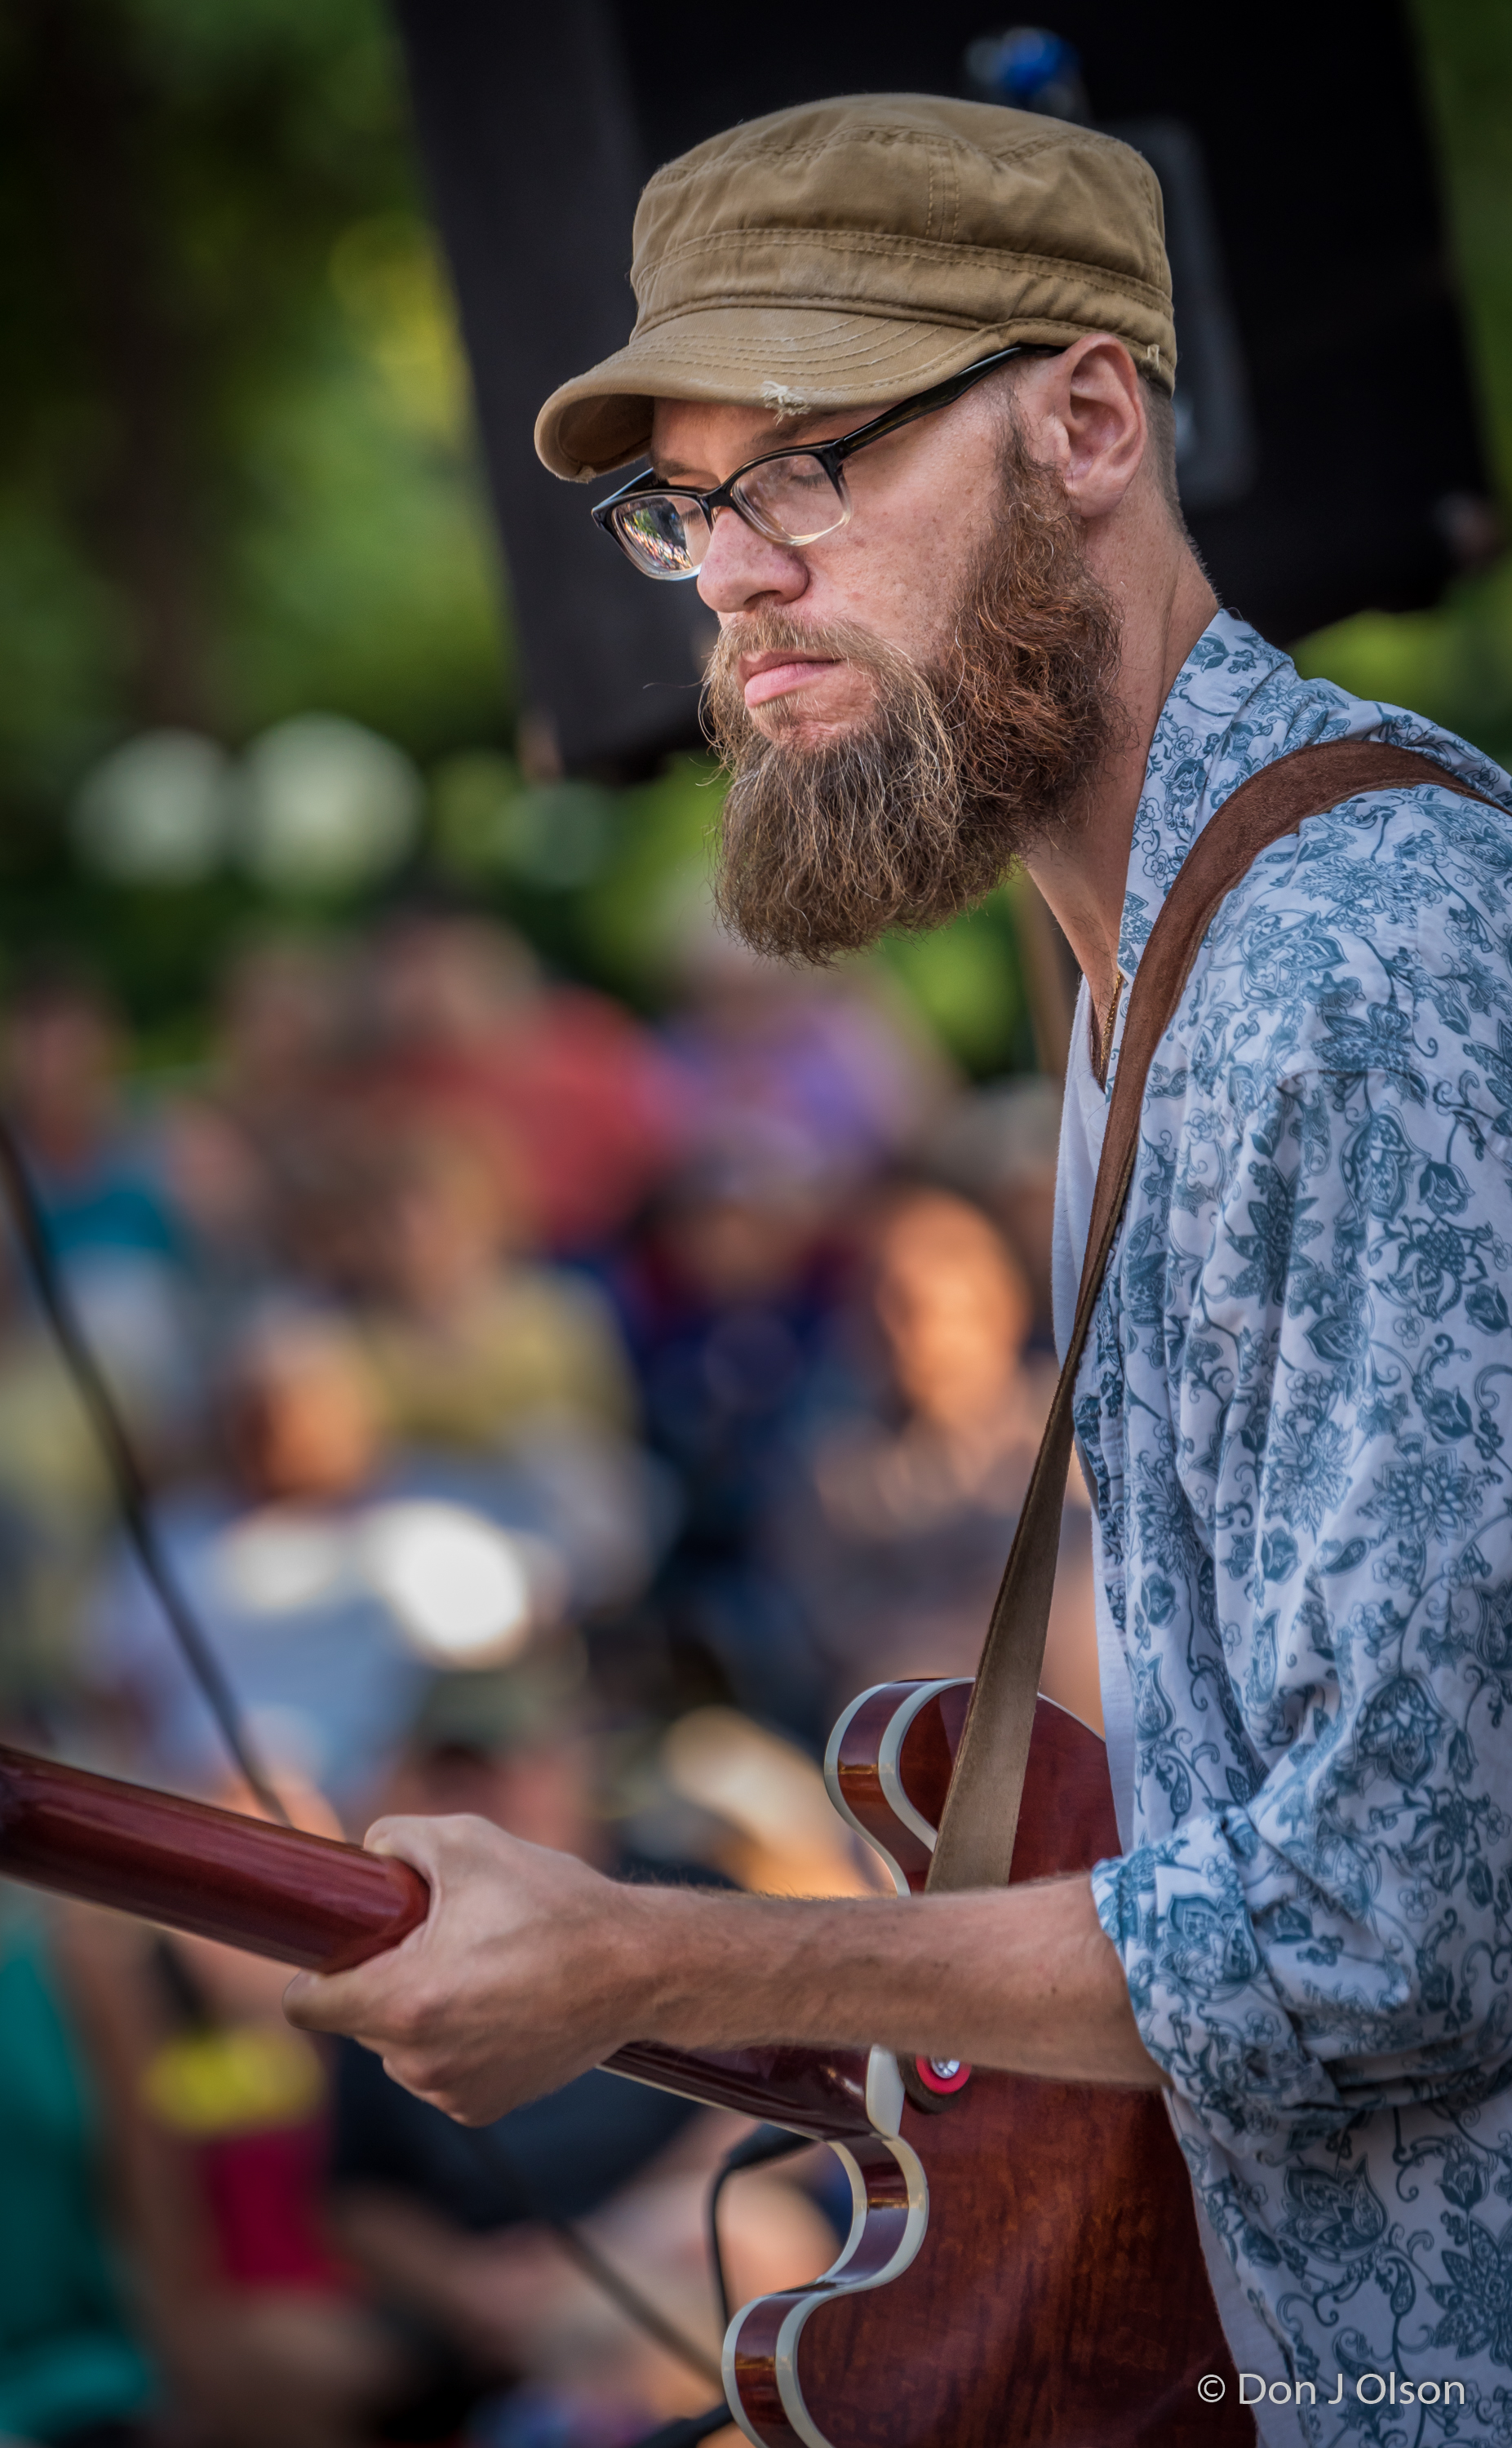 Andrew Wozniak / The Veterans' Memorial Wolfe Park Amphitheater / St. Louis Park, Minnesota / July 29th, 2017